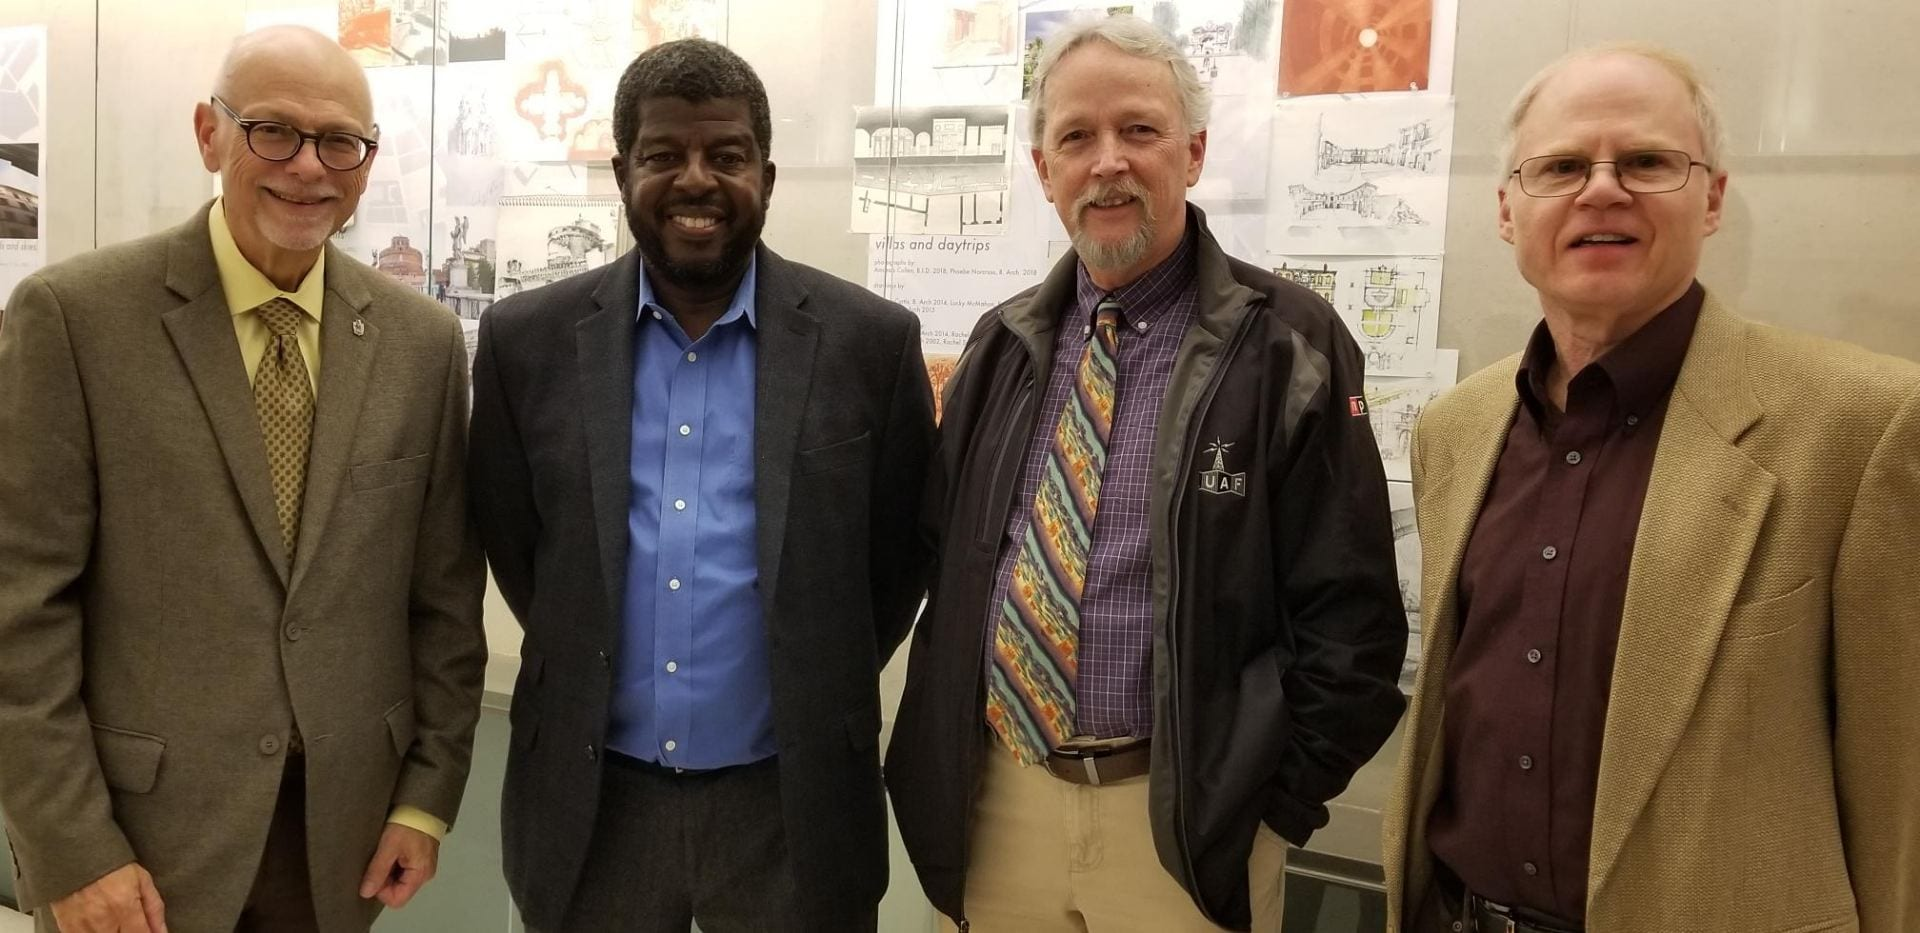 University of Arkansas Chancellor Joseph Steinmetz, left, was among attendees. Also pictured are VDP Holmes, Director-KUAF Rick Stockdell and journalism lecturer David Edmark. 10/18/18